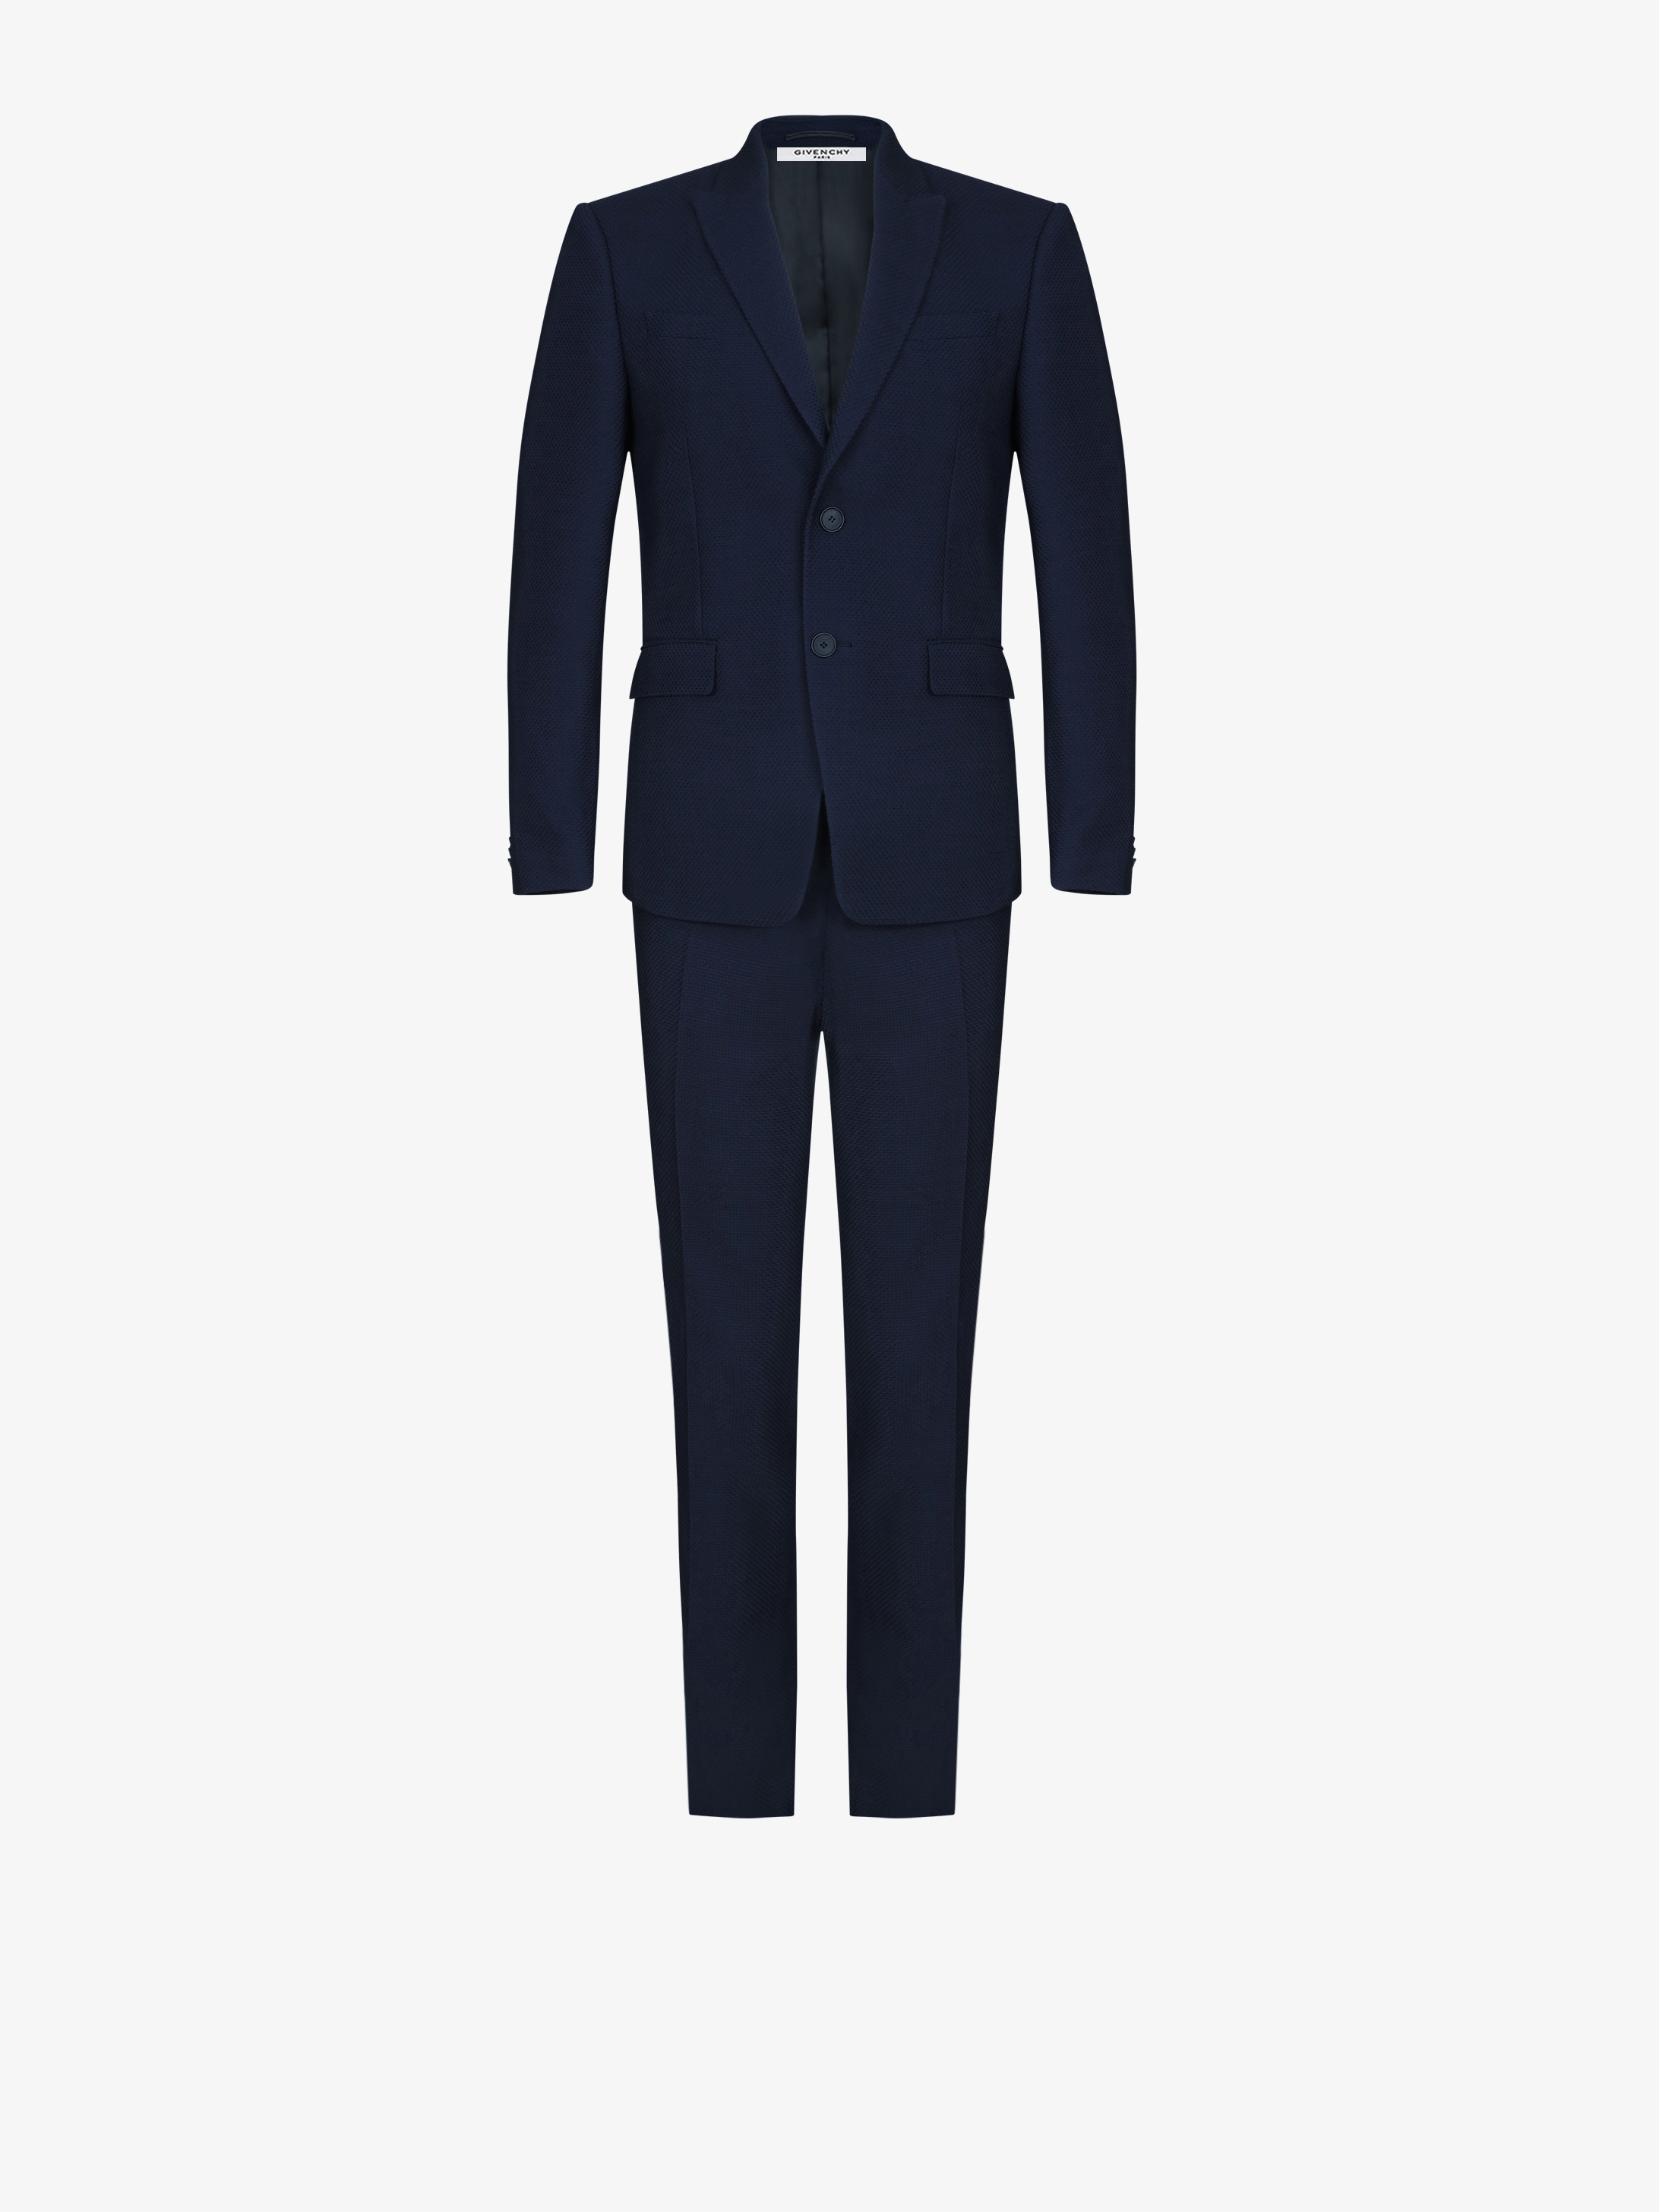 Regular fit wool jersey suit